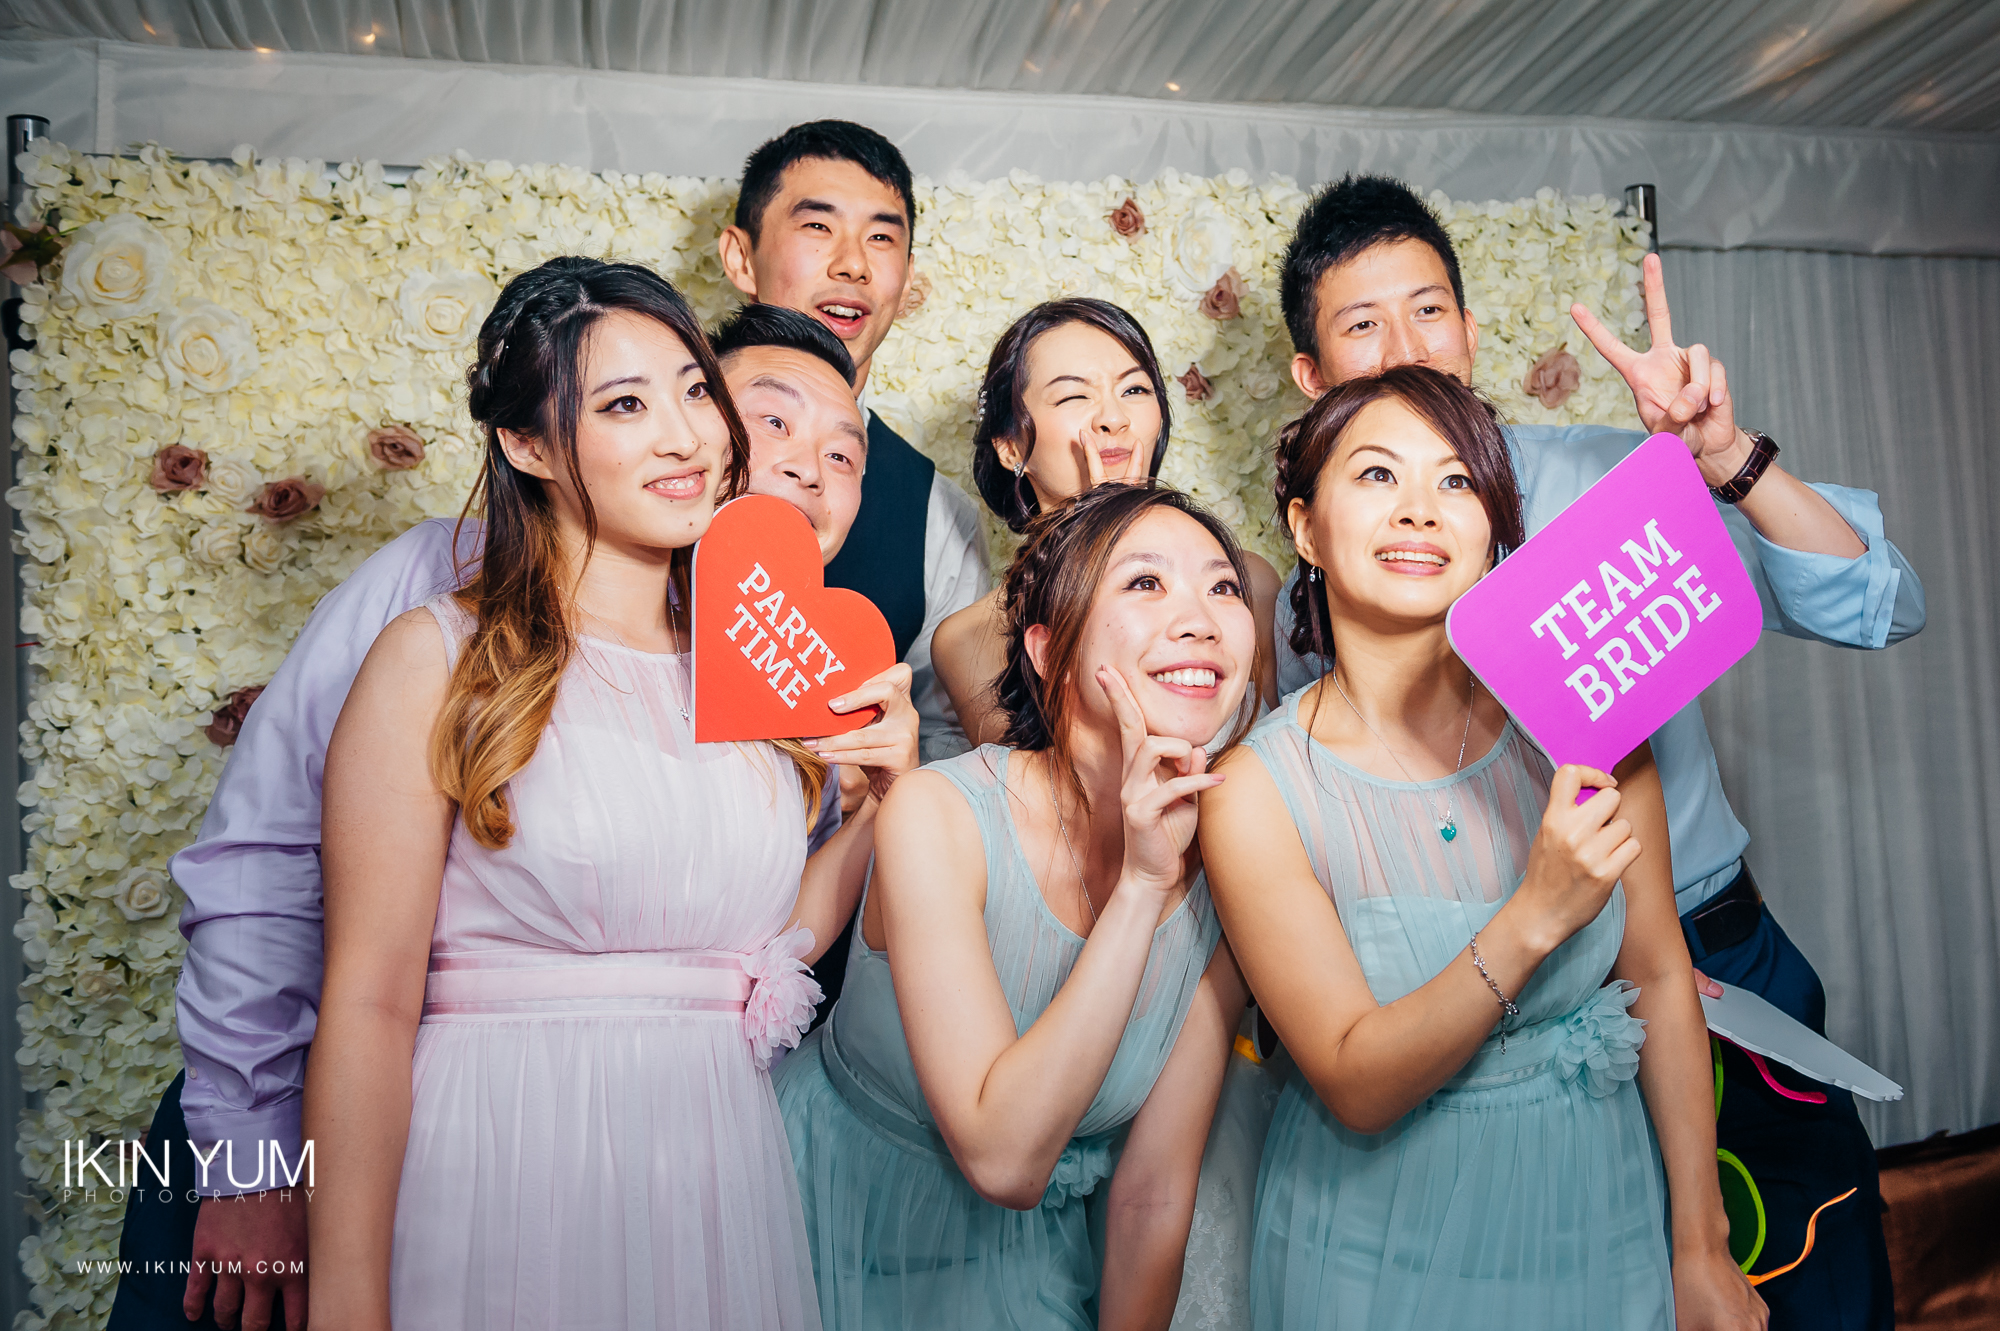 Sylvianne & Chun Wedding Day - Ikin Yum Photography-138.jpg